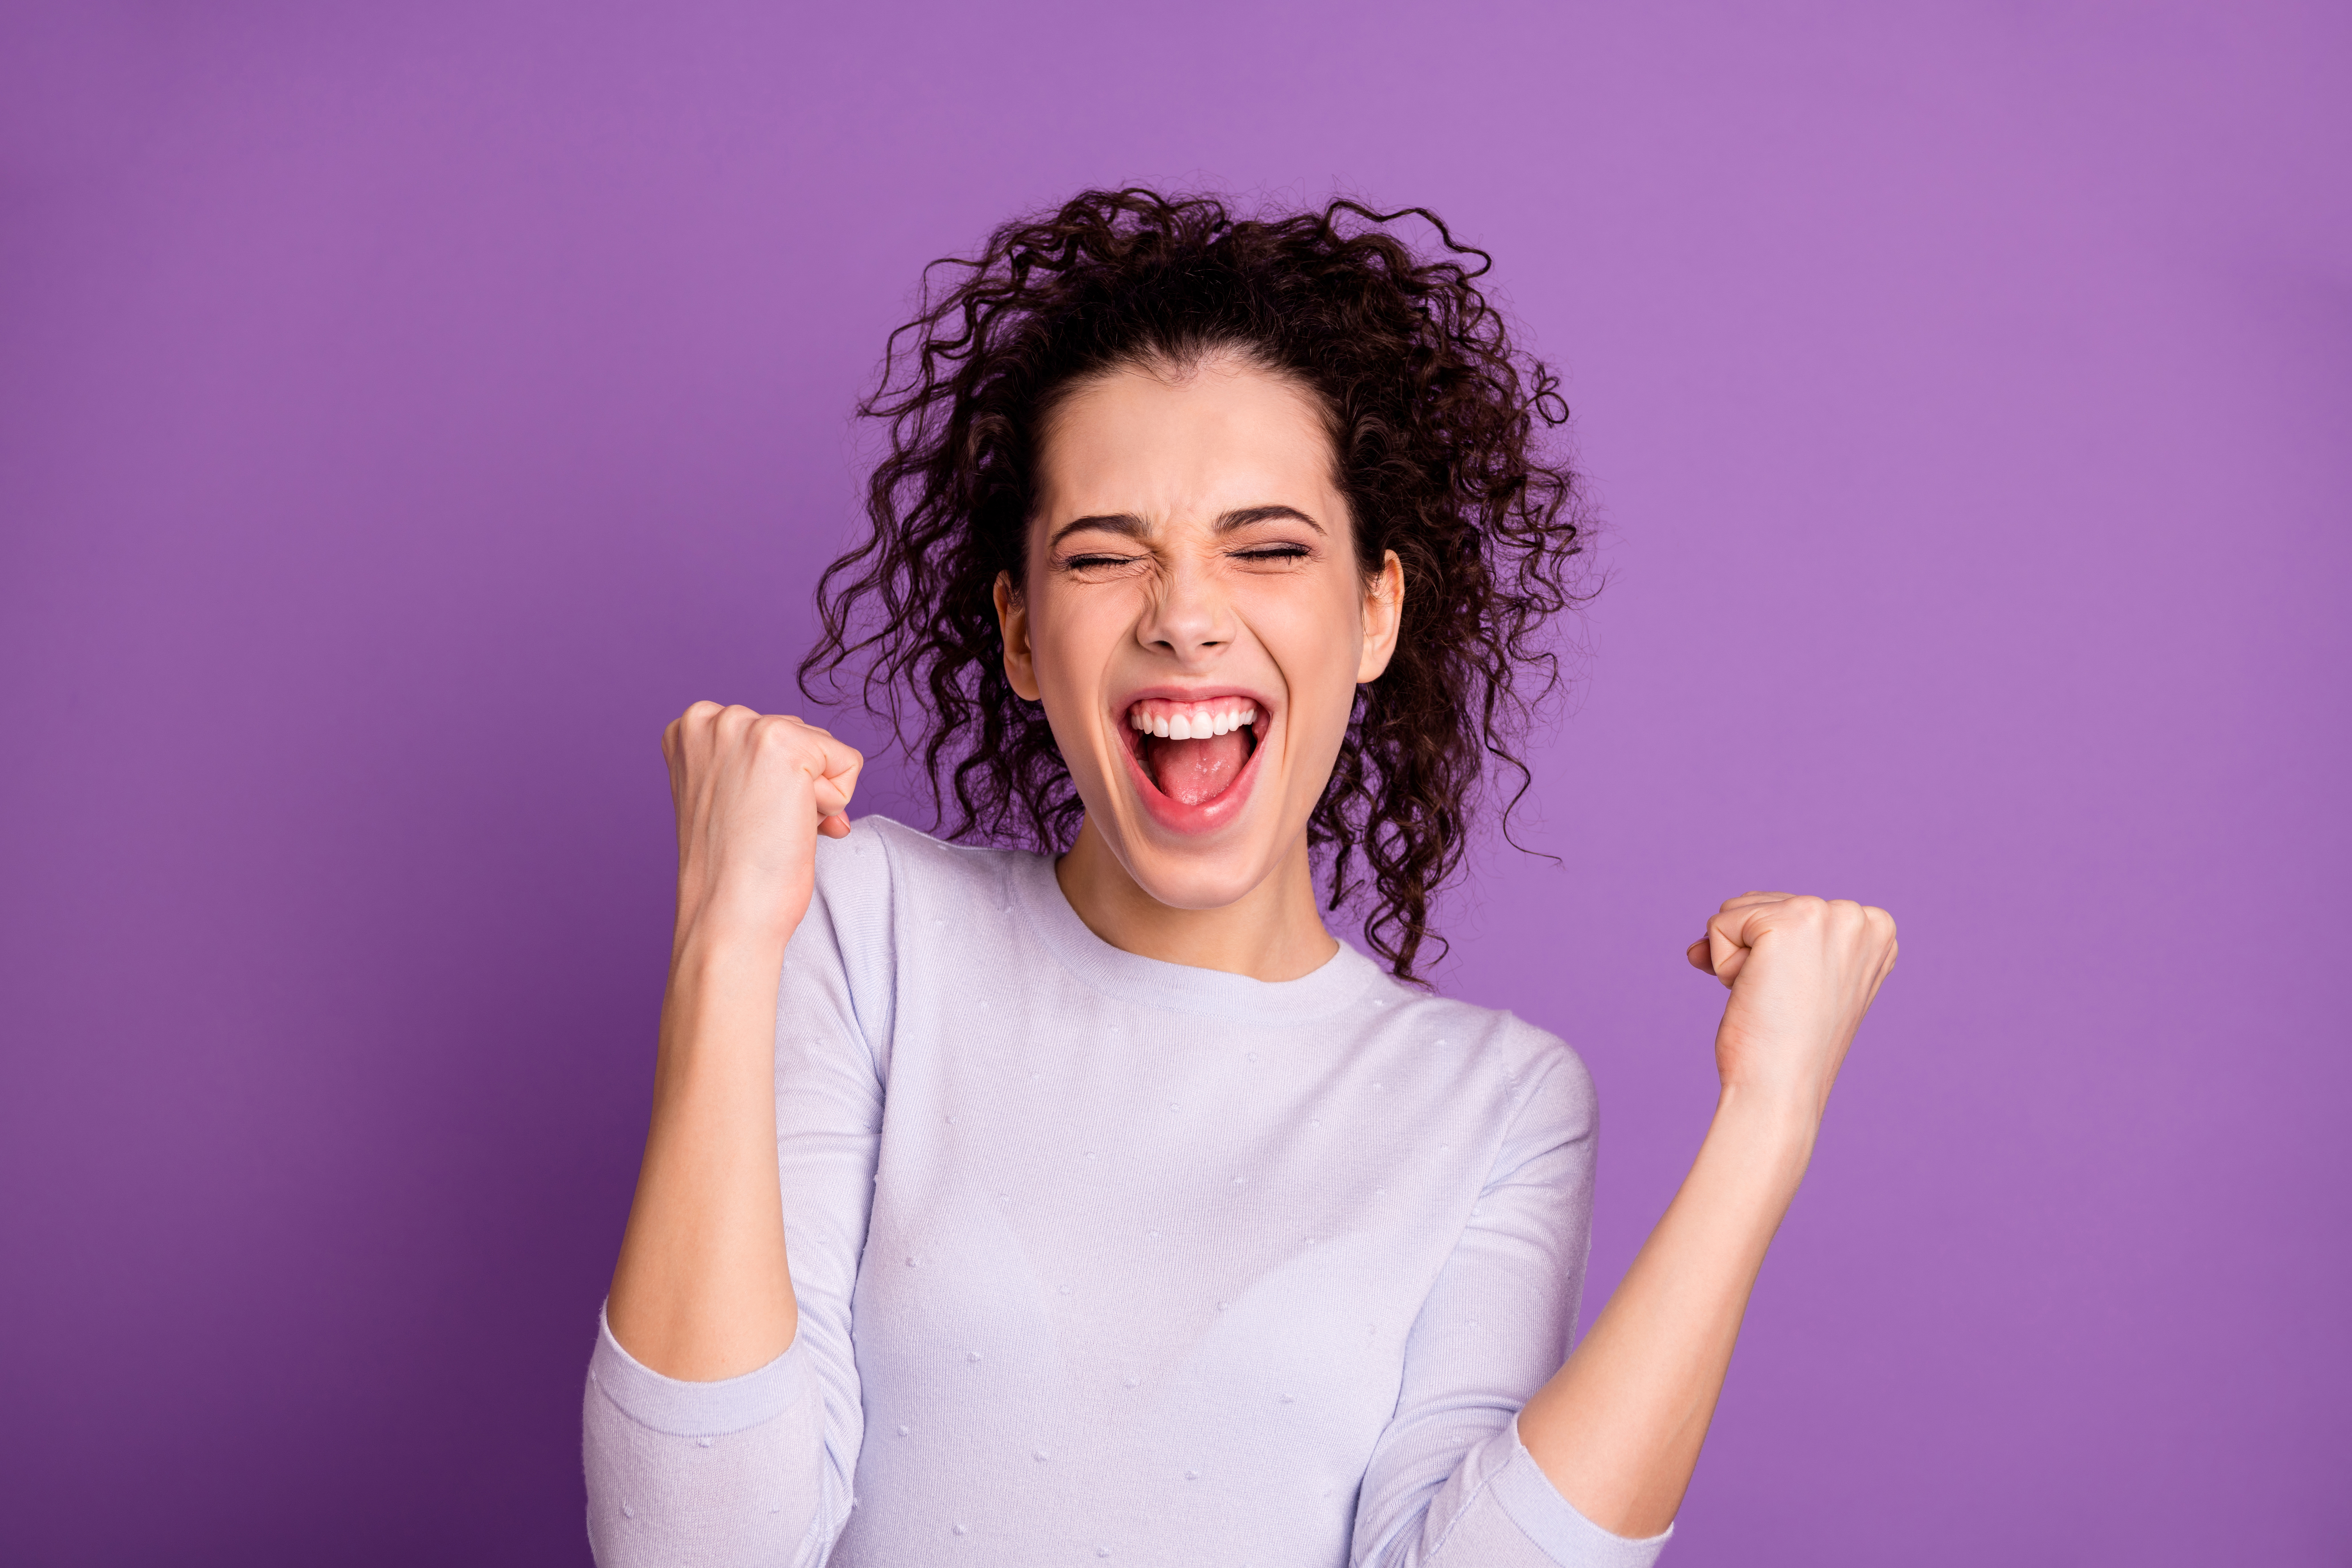 Woman celebrating with eyes closed and fists in the air